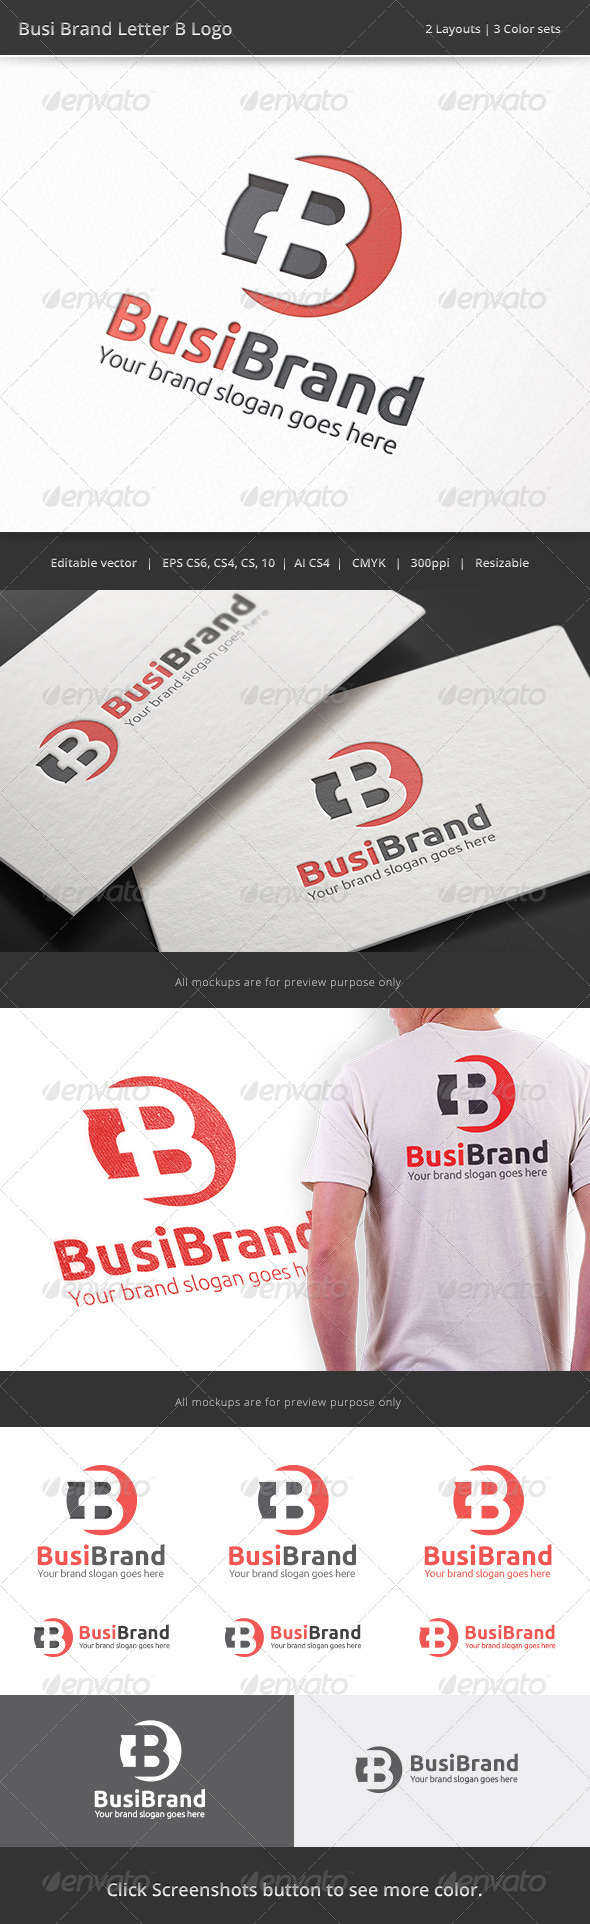 GraphicRiver Business Brand Letter B Logo 8430154